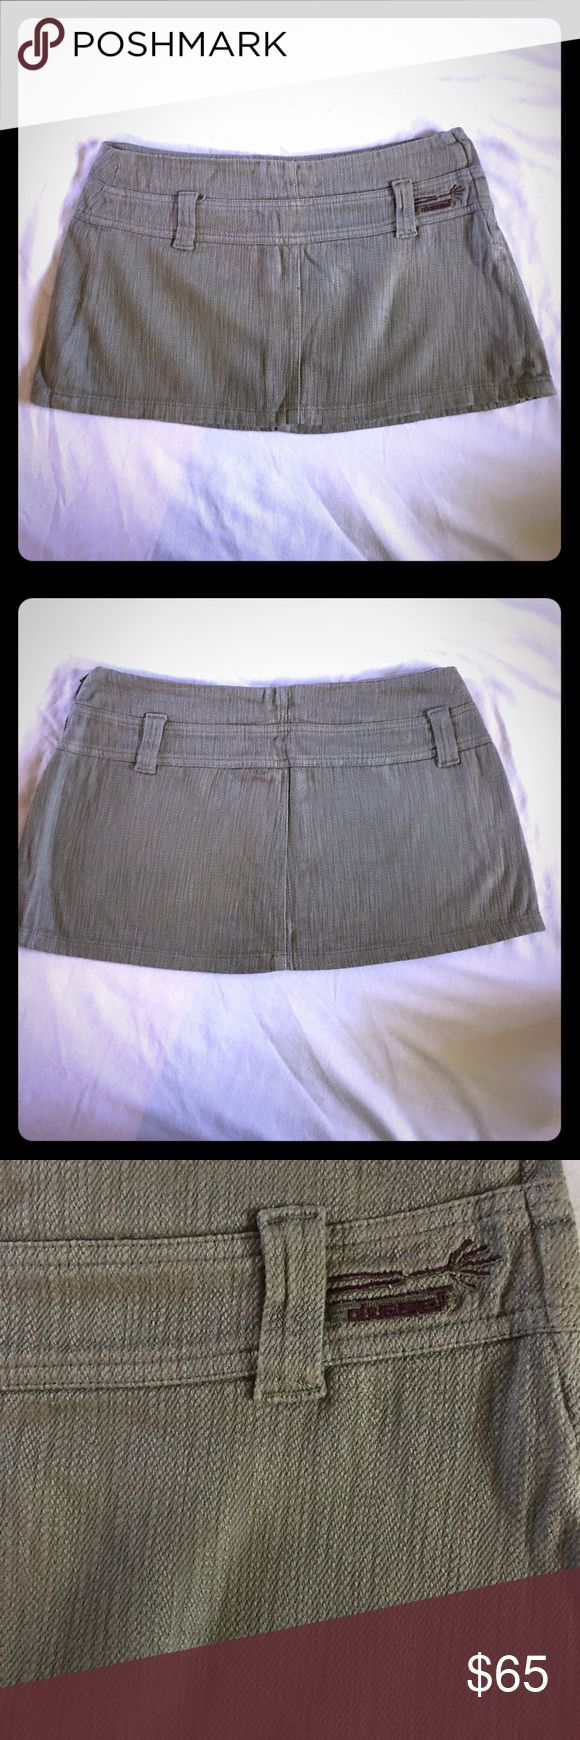 """🌺SUMMER SALE🌺 Diesel macro mini skirt Awesome vintage Diesel macro mini skirt. Waist is approx. 15.5-16"""" and length is 11""""!! This is a size 30, very soft earthy tone and super cute over leggings! Diesel Skirts Mini"""